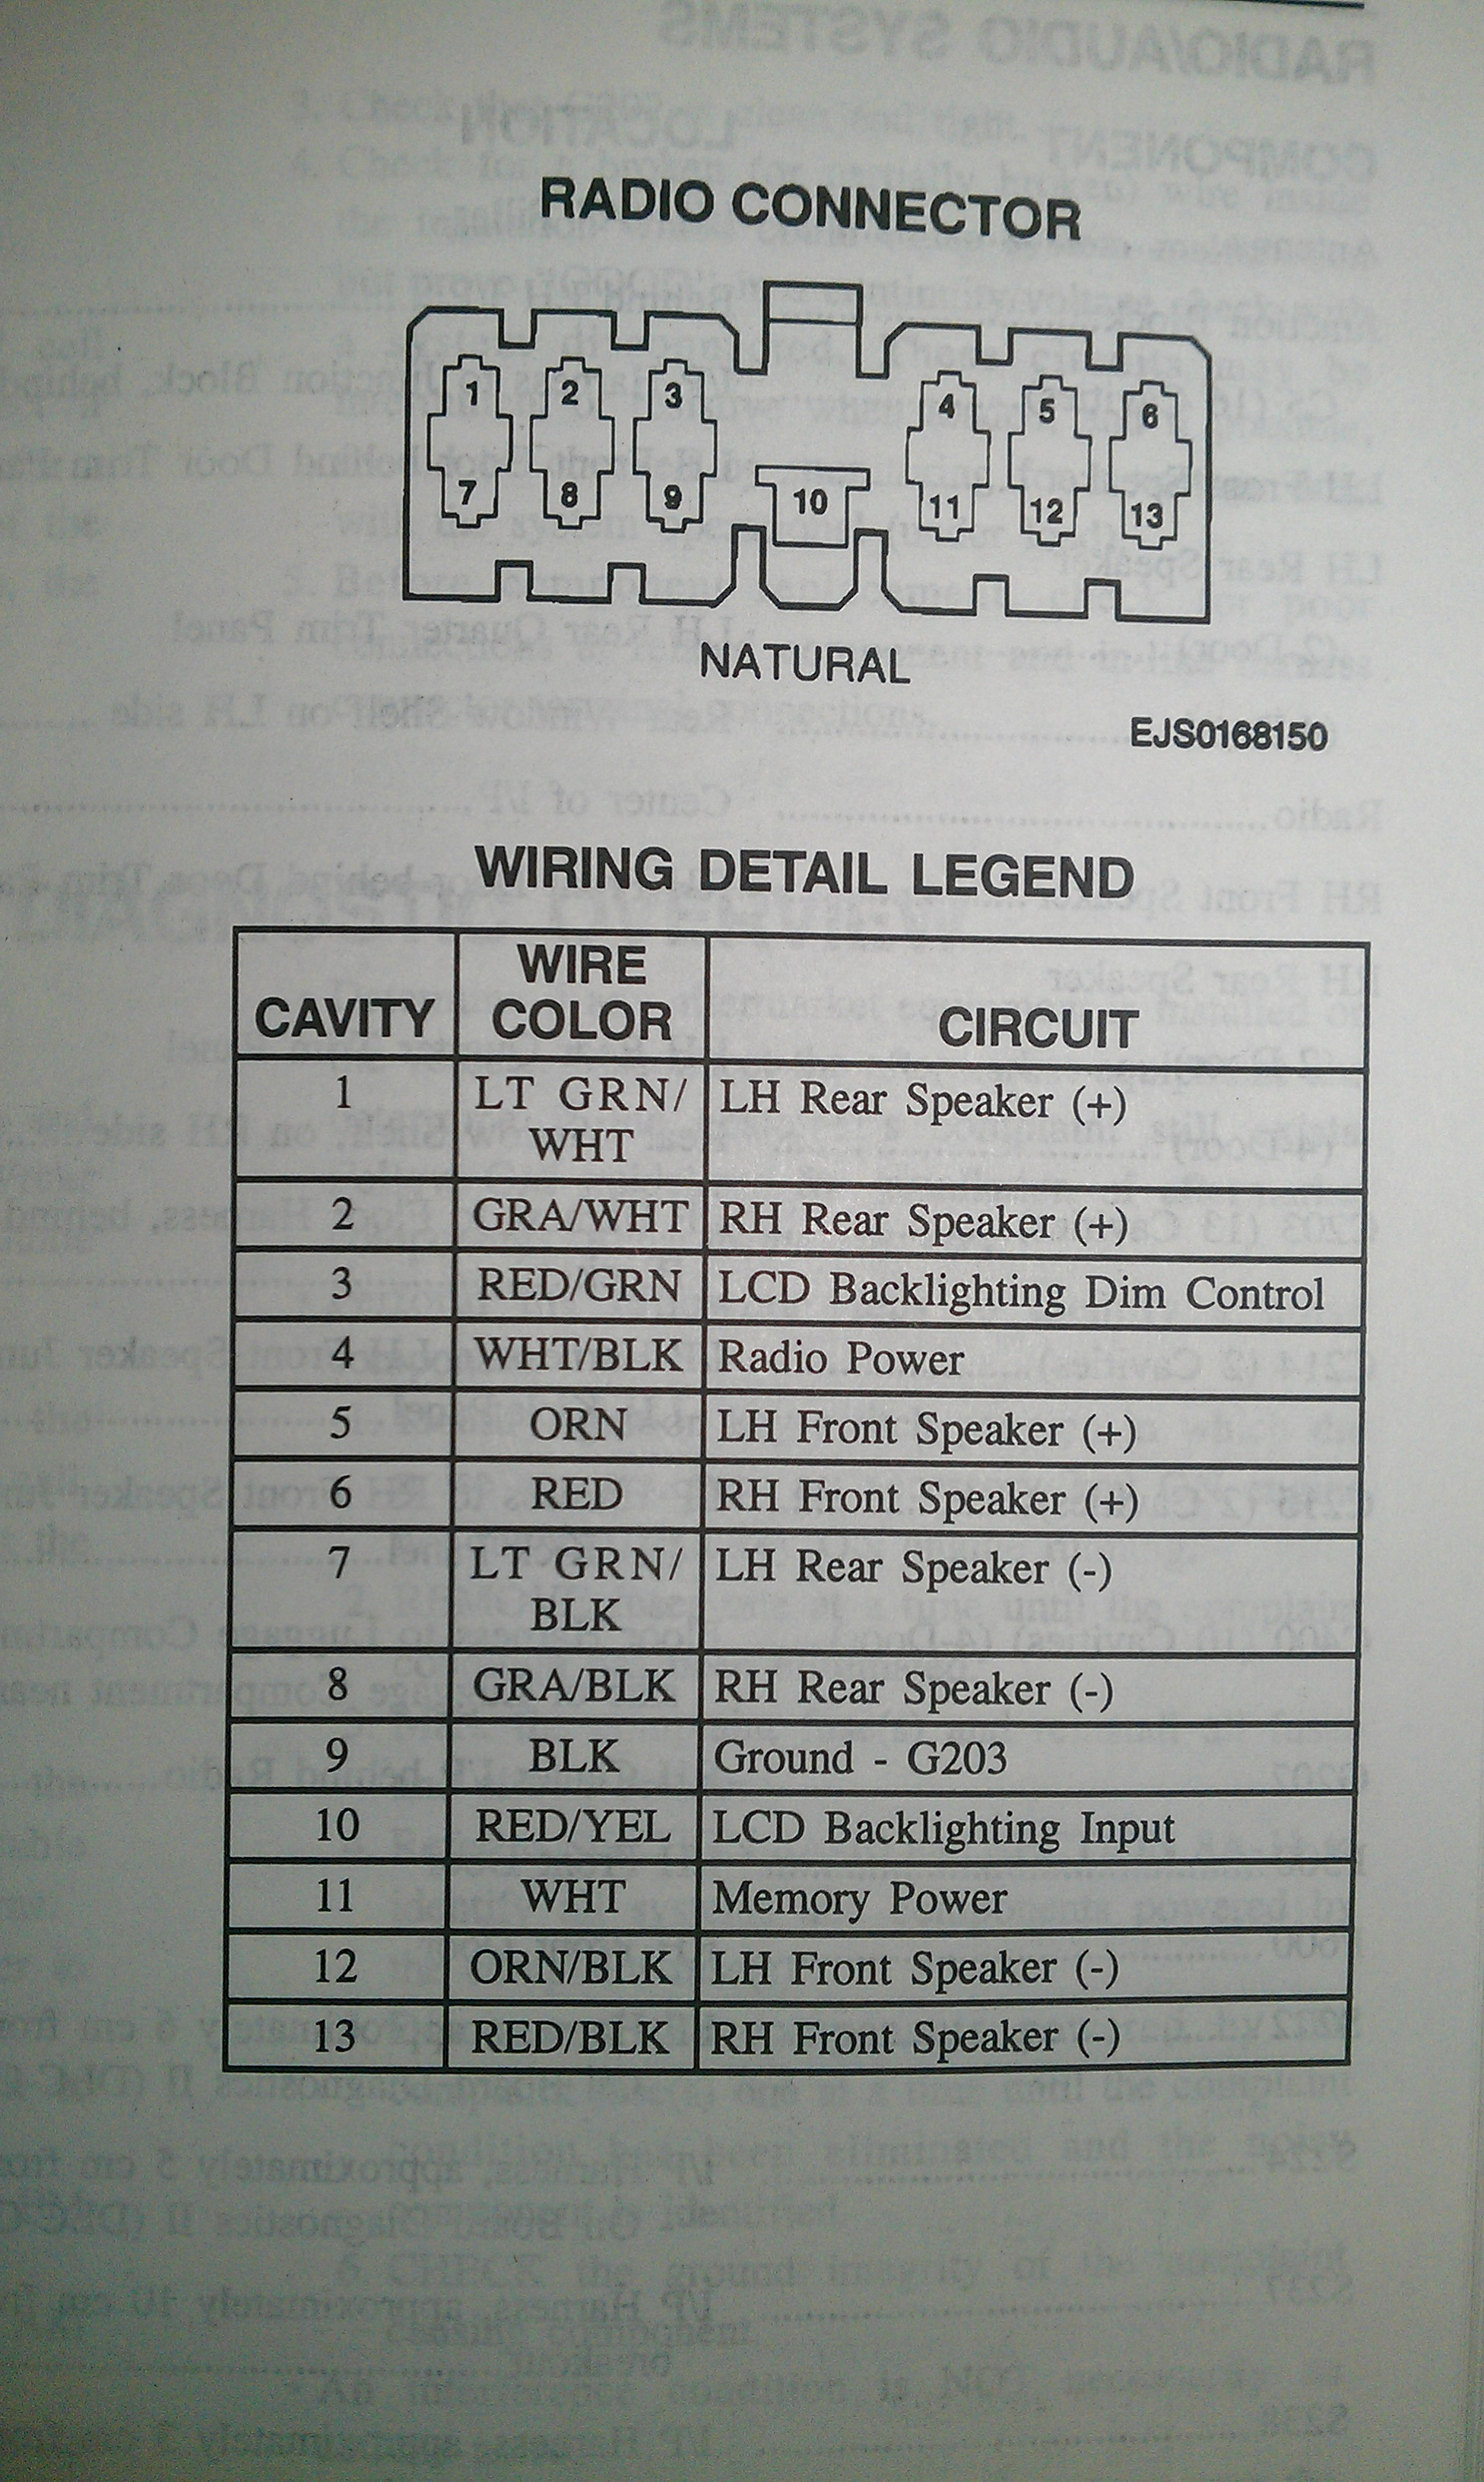 10788004324_6f73ce0165_o radio wiring 97 geo metro radio wiring diagram at bakdesigns.co